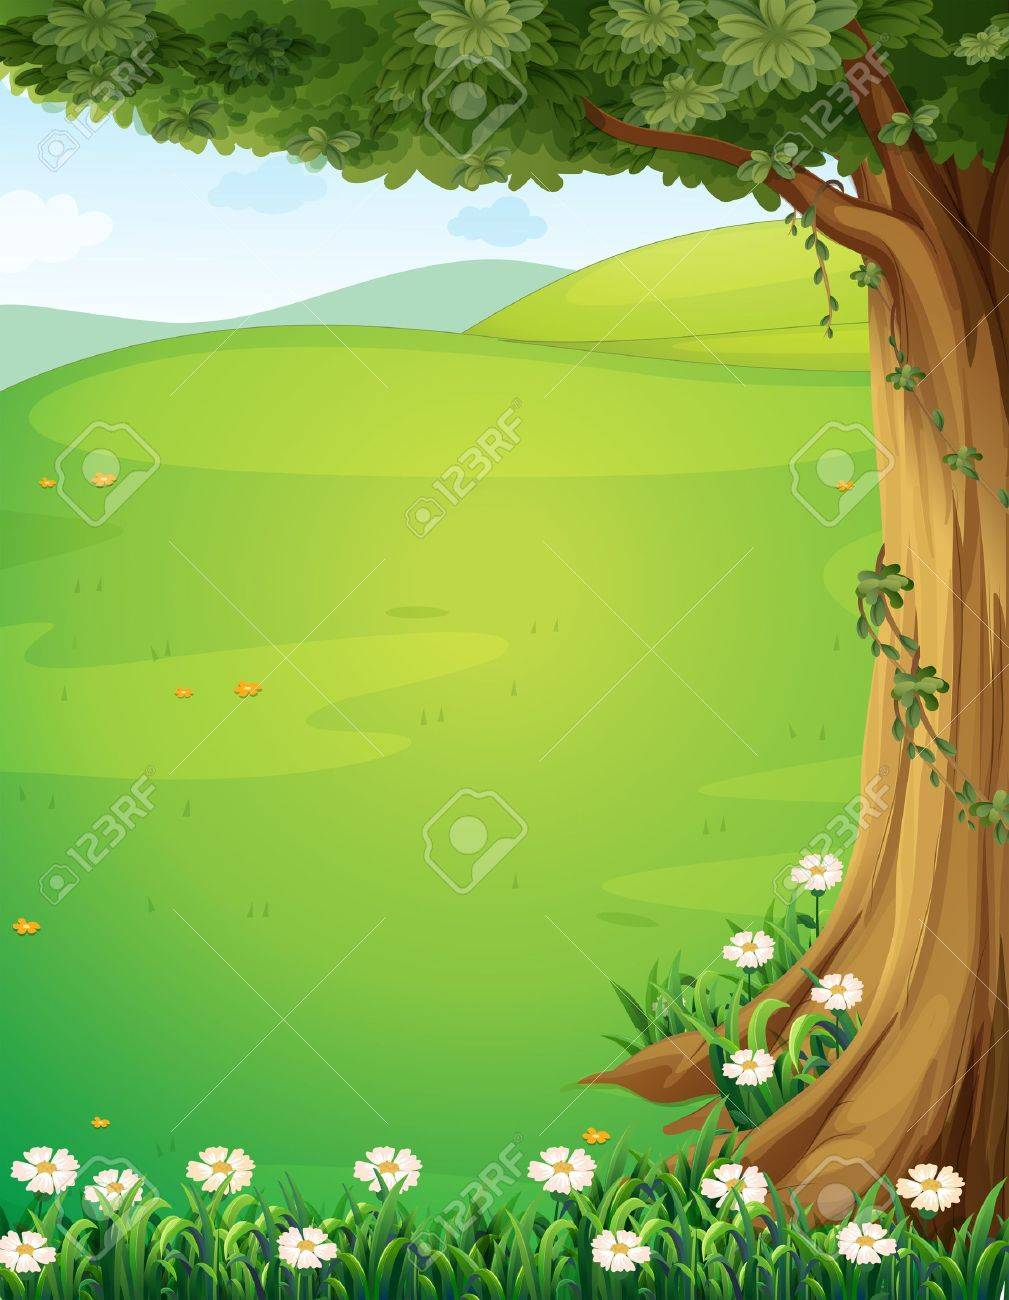 Illustration of a view of the hills with a tree and flowers - 22065634